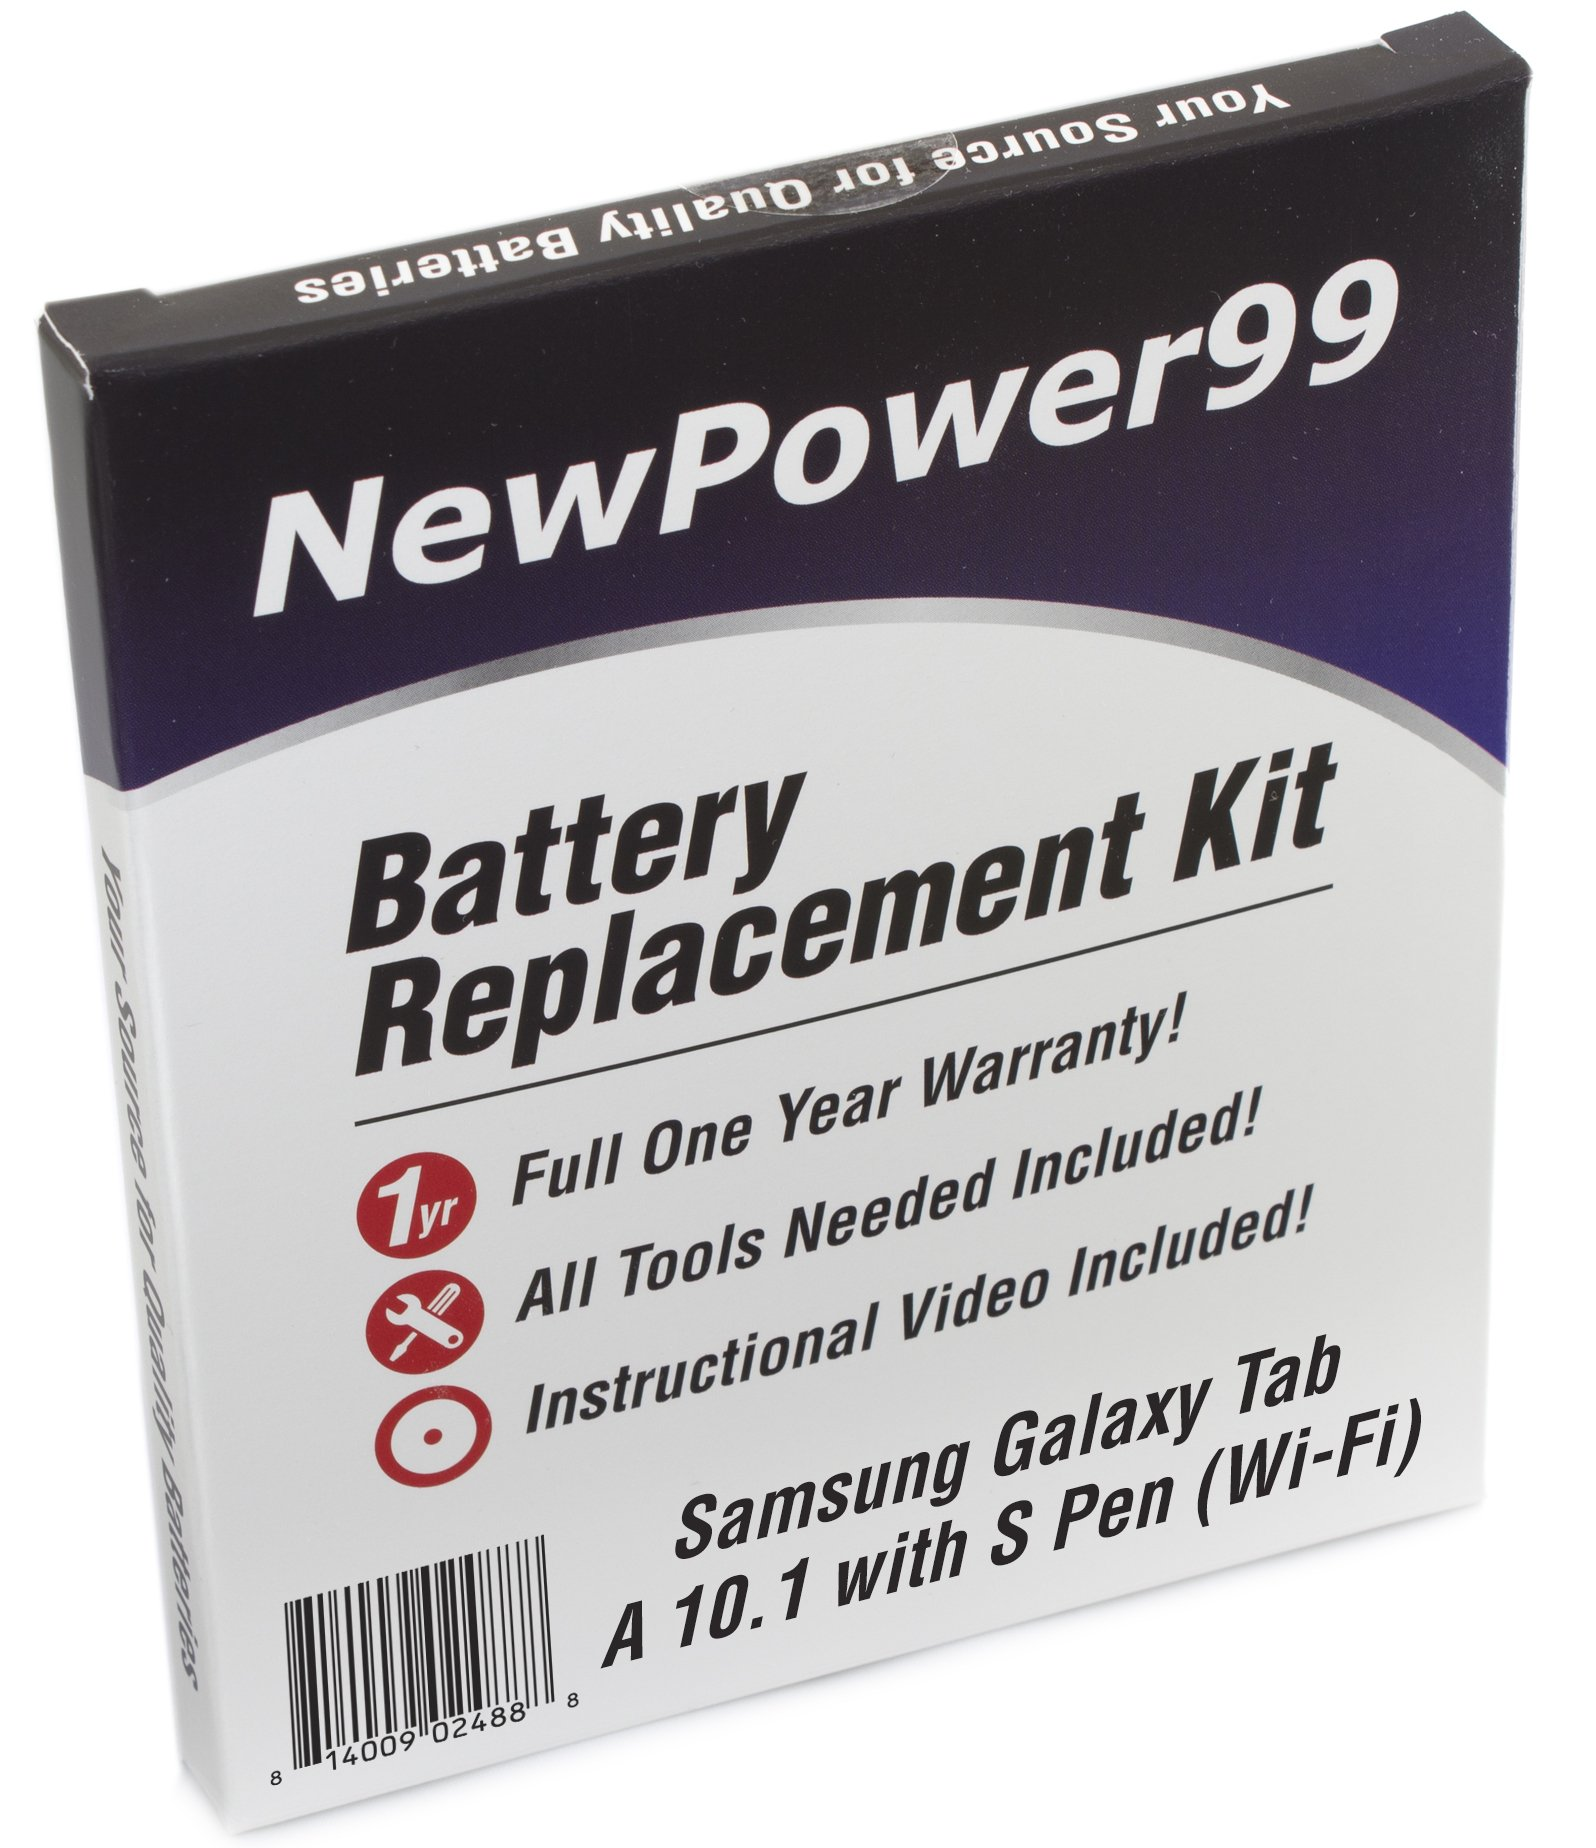 NewPower99 Samsung Galaxy Tab A 10.1 with S Pen (Wi-Fi) Battery Replacement Kit with Video Installation DVD, Installation Tools, and Extended Life Battery